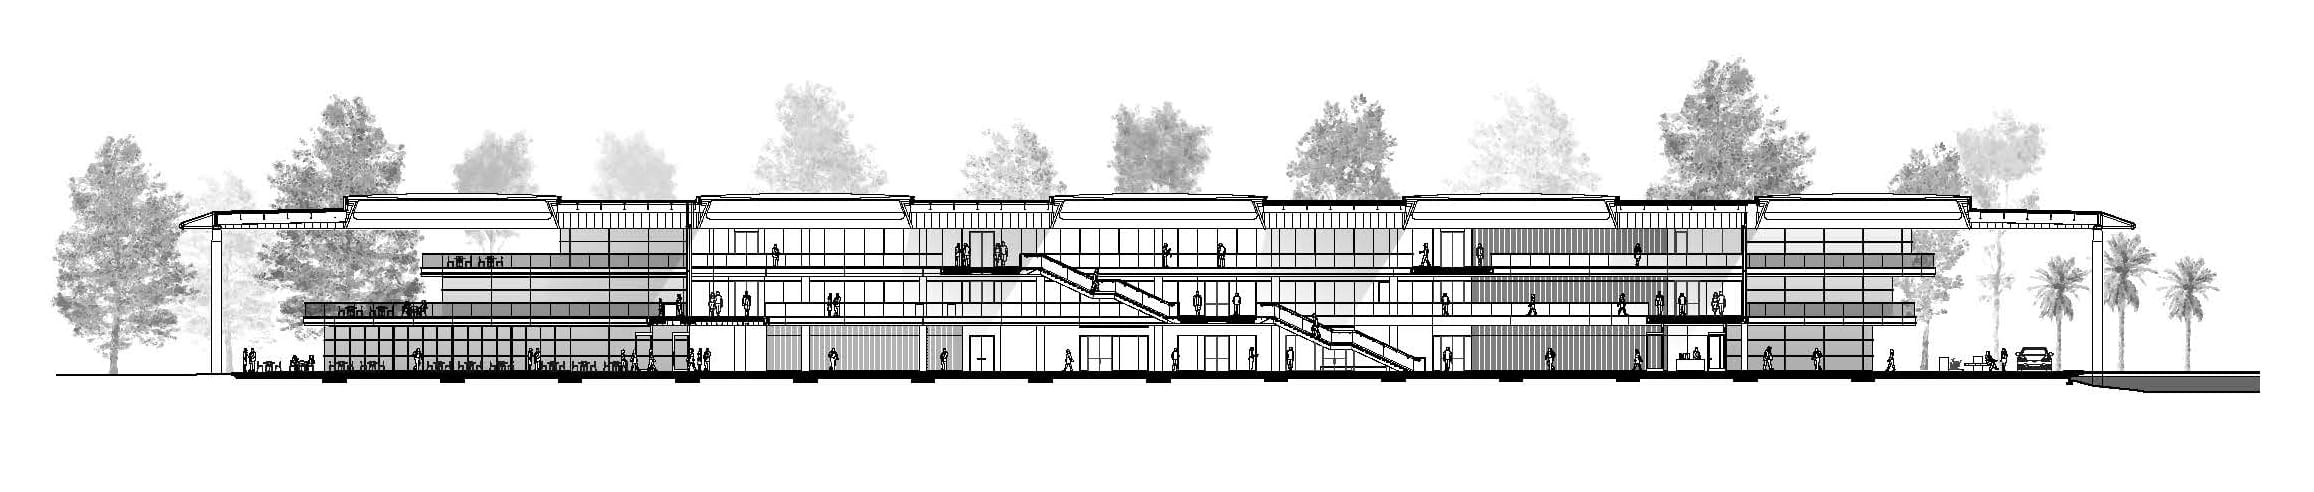 Section of PGA TOUR new headquarters by Foster + Partners